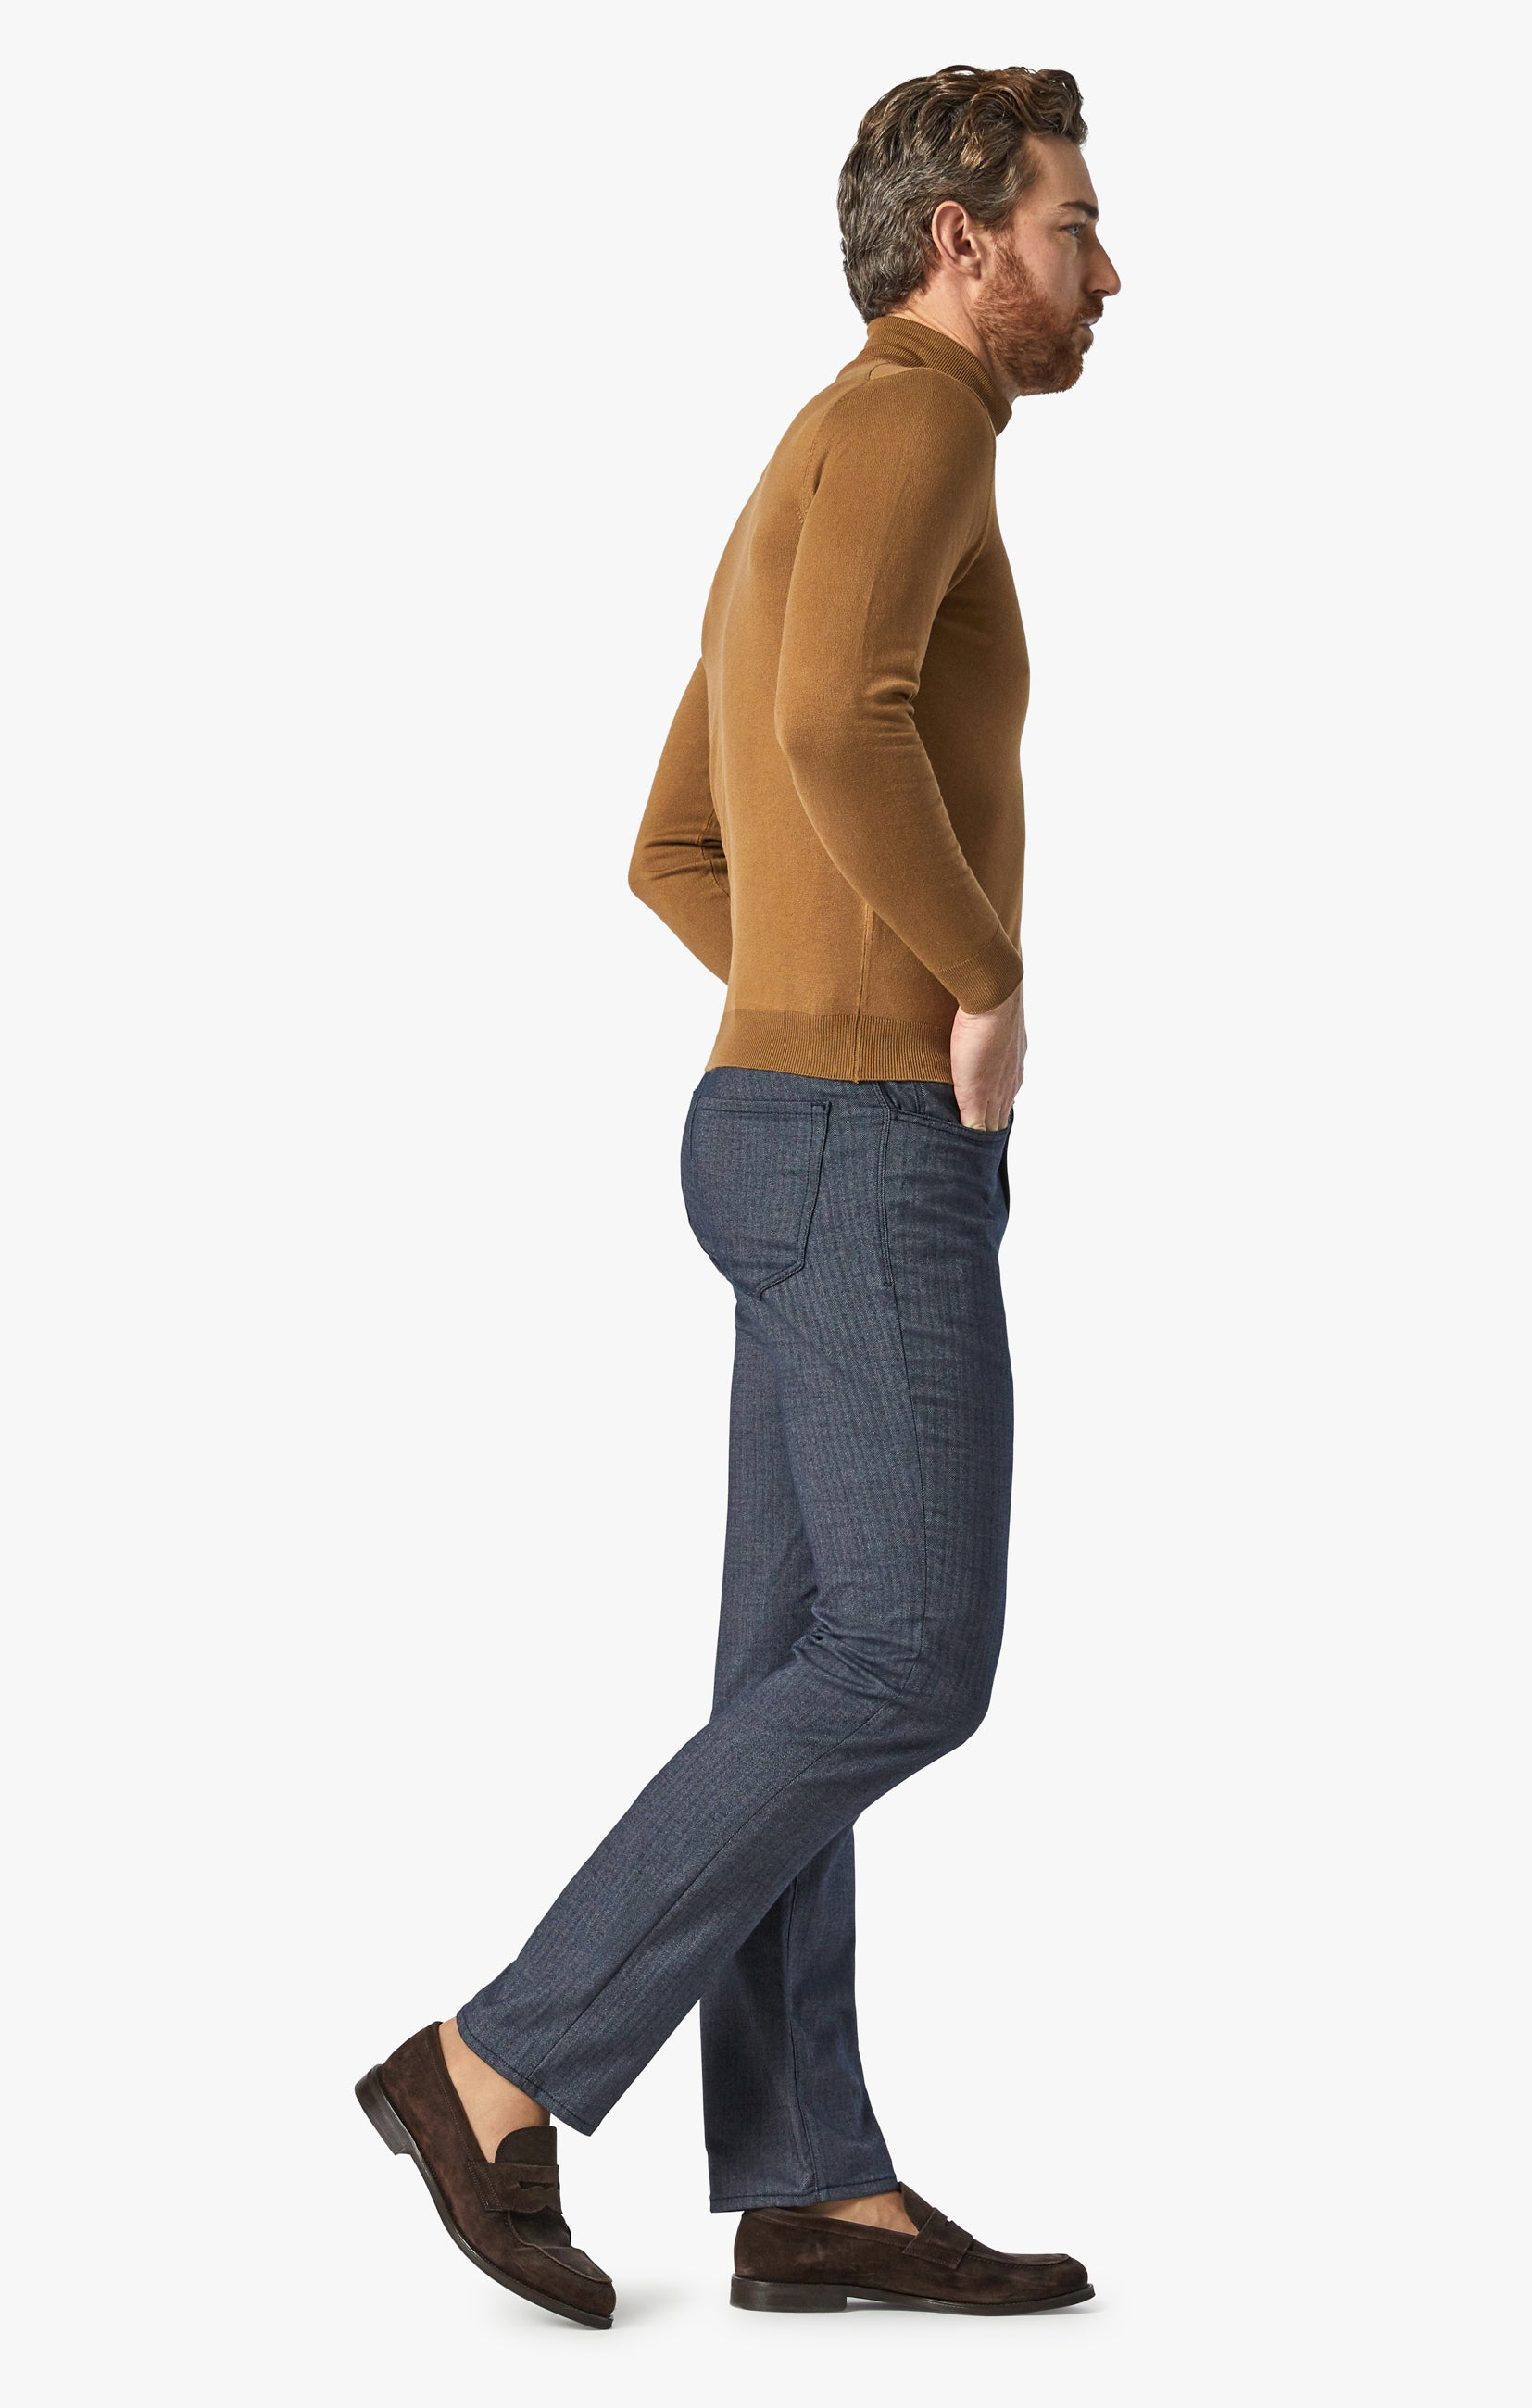 Charisma Relaxed Straight Pants in Navy Herringbone Image 2